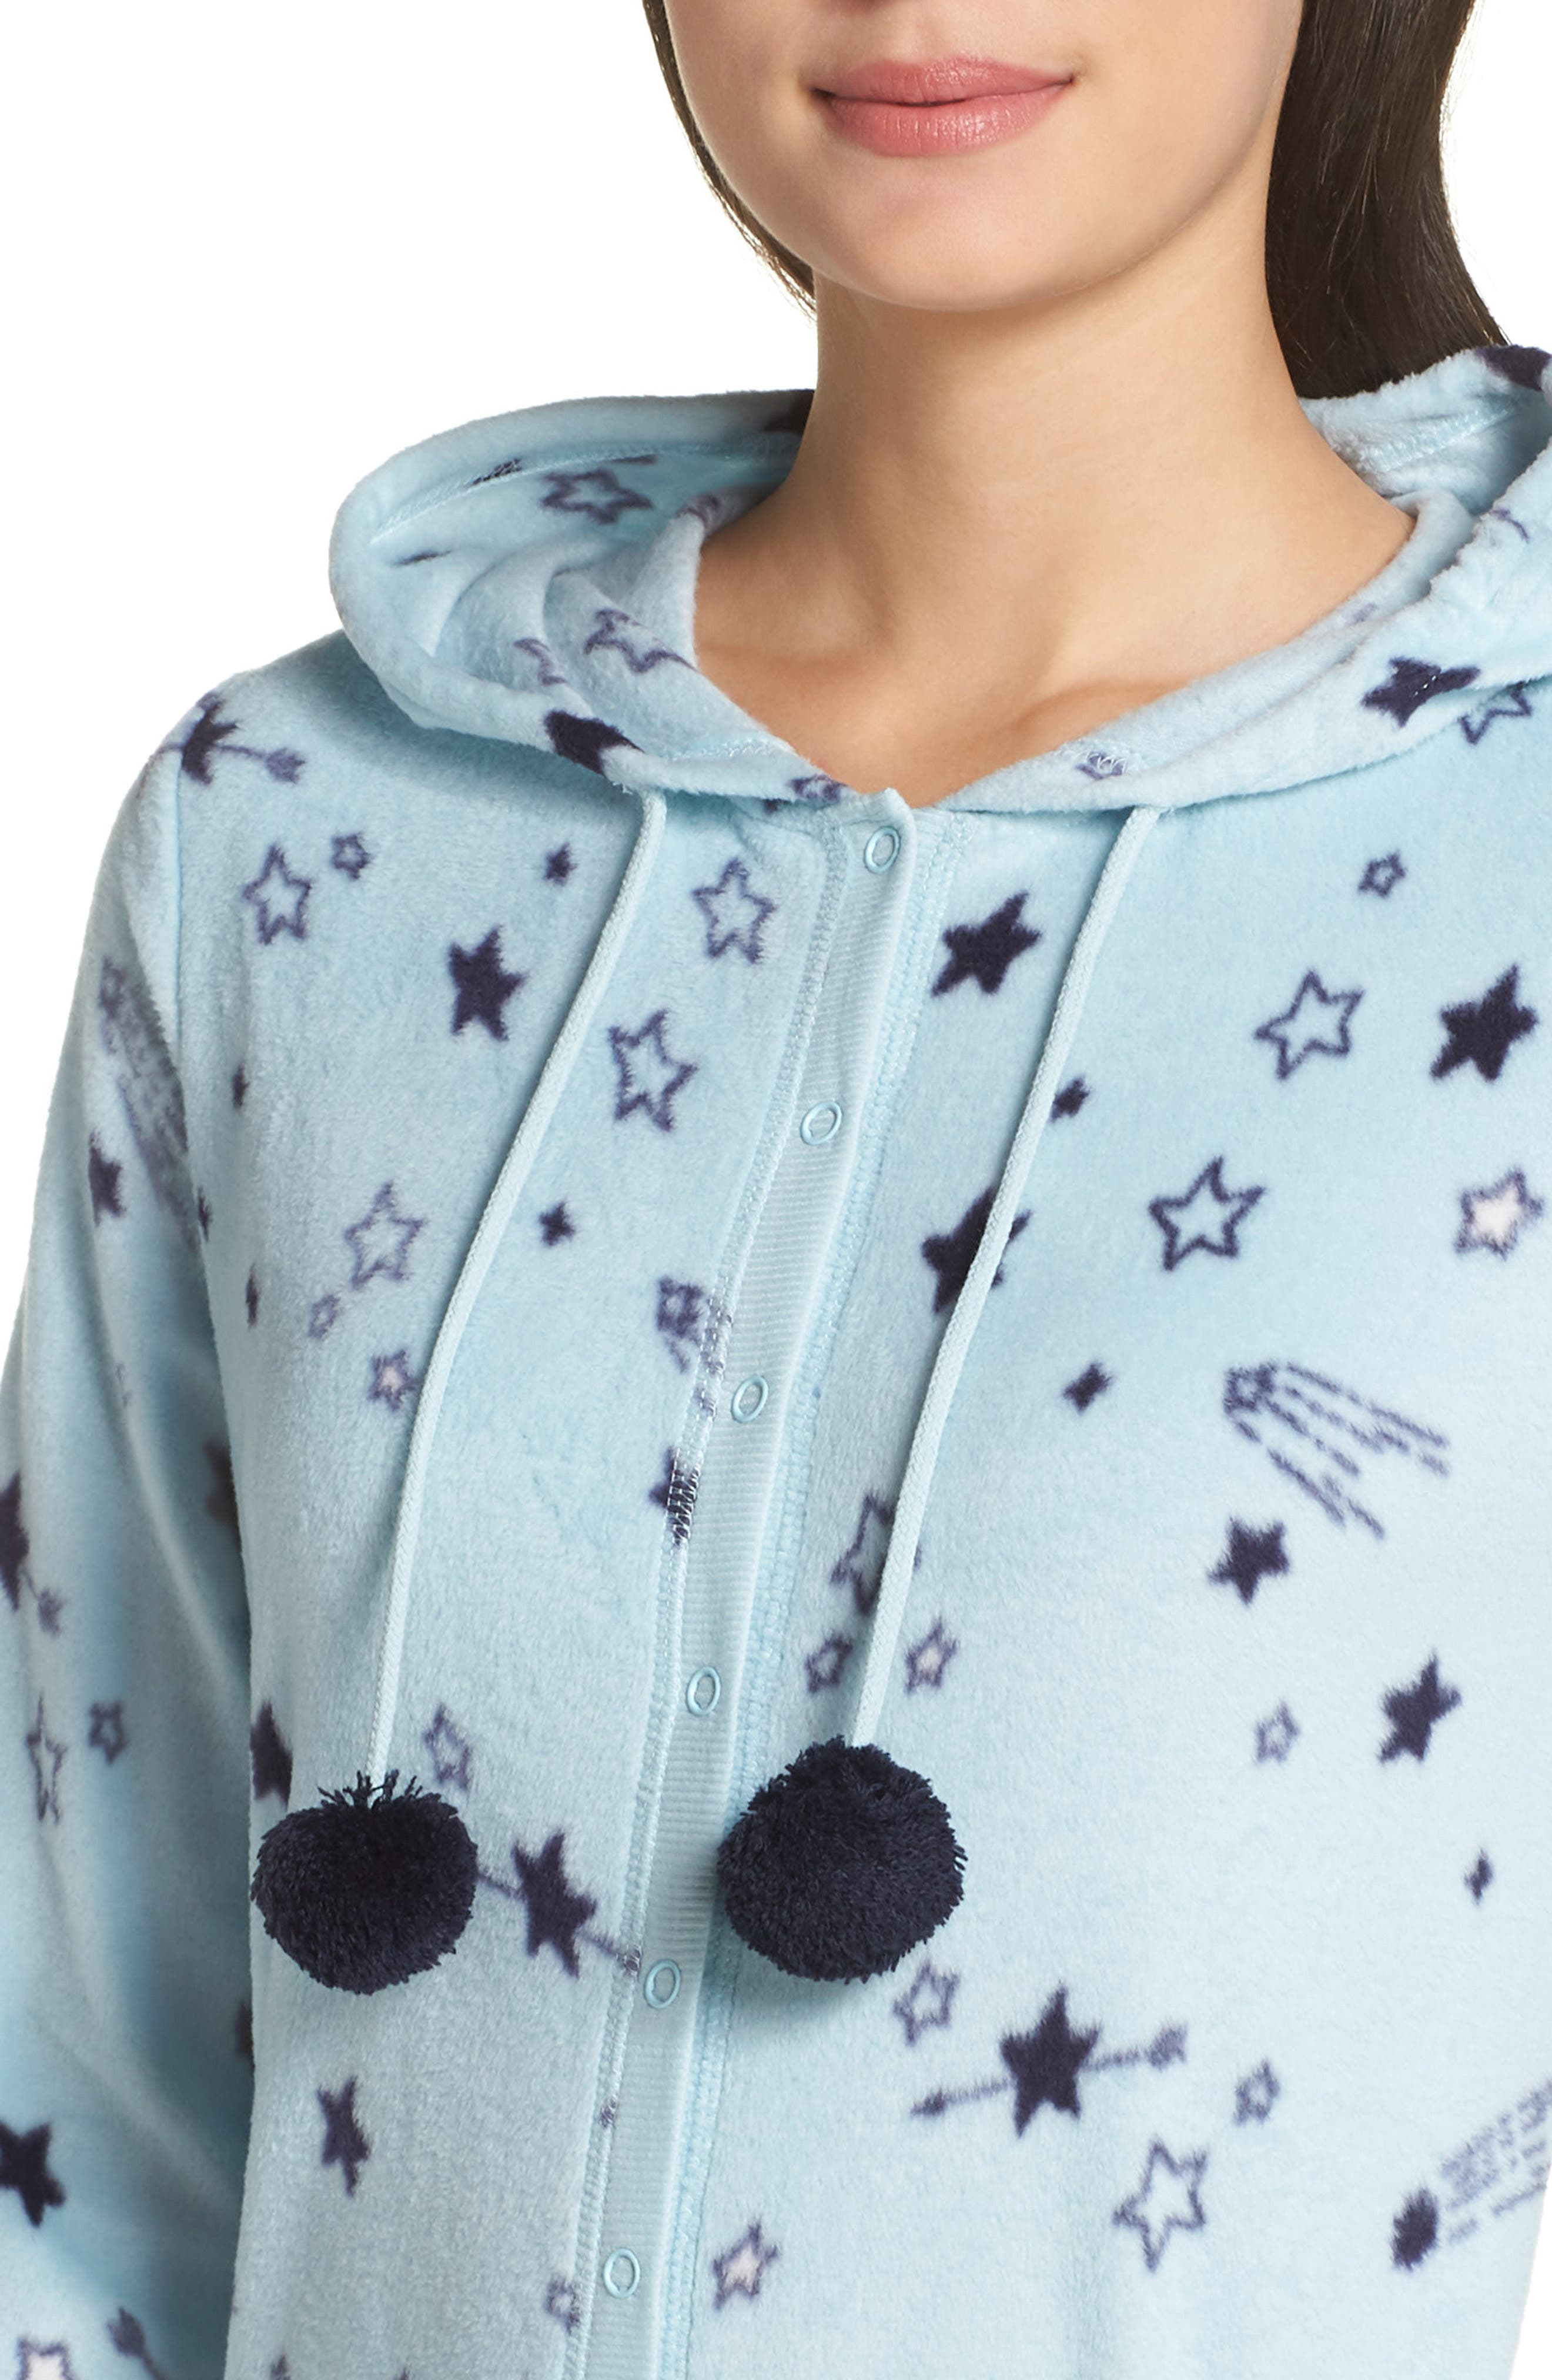 Hooded Pajama Jumpsuit,                             Alternate thumbnail 4, color,                             BLUE OMPHALODES SHOOT 4 STARS